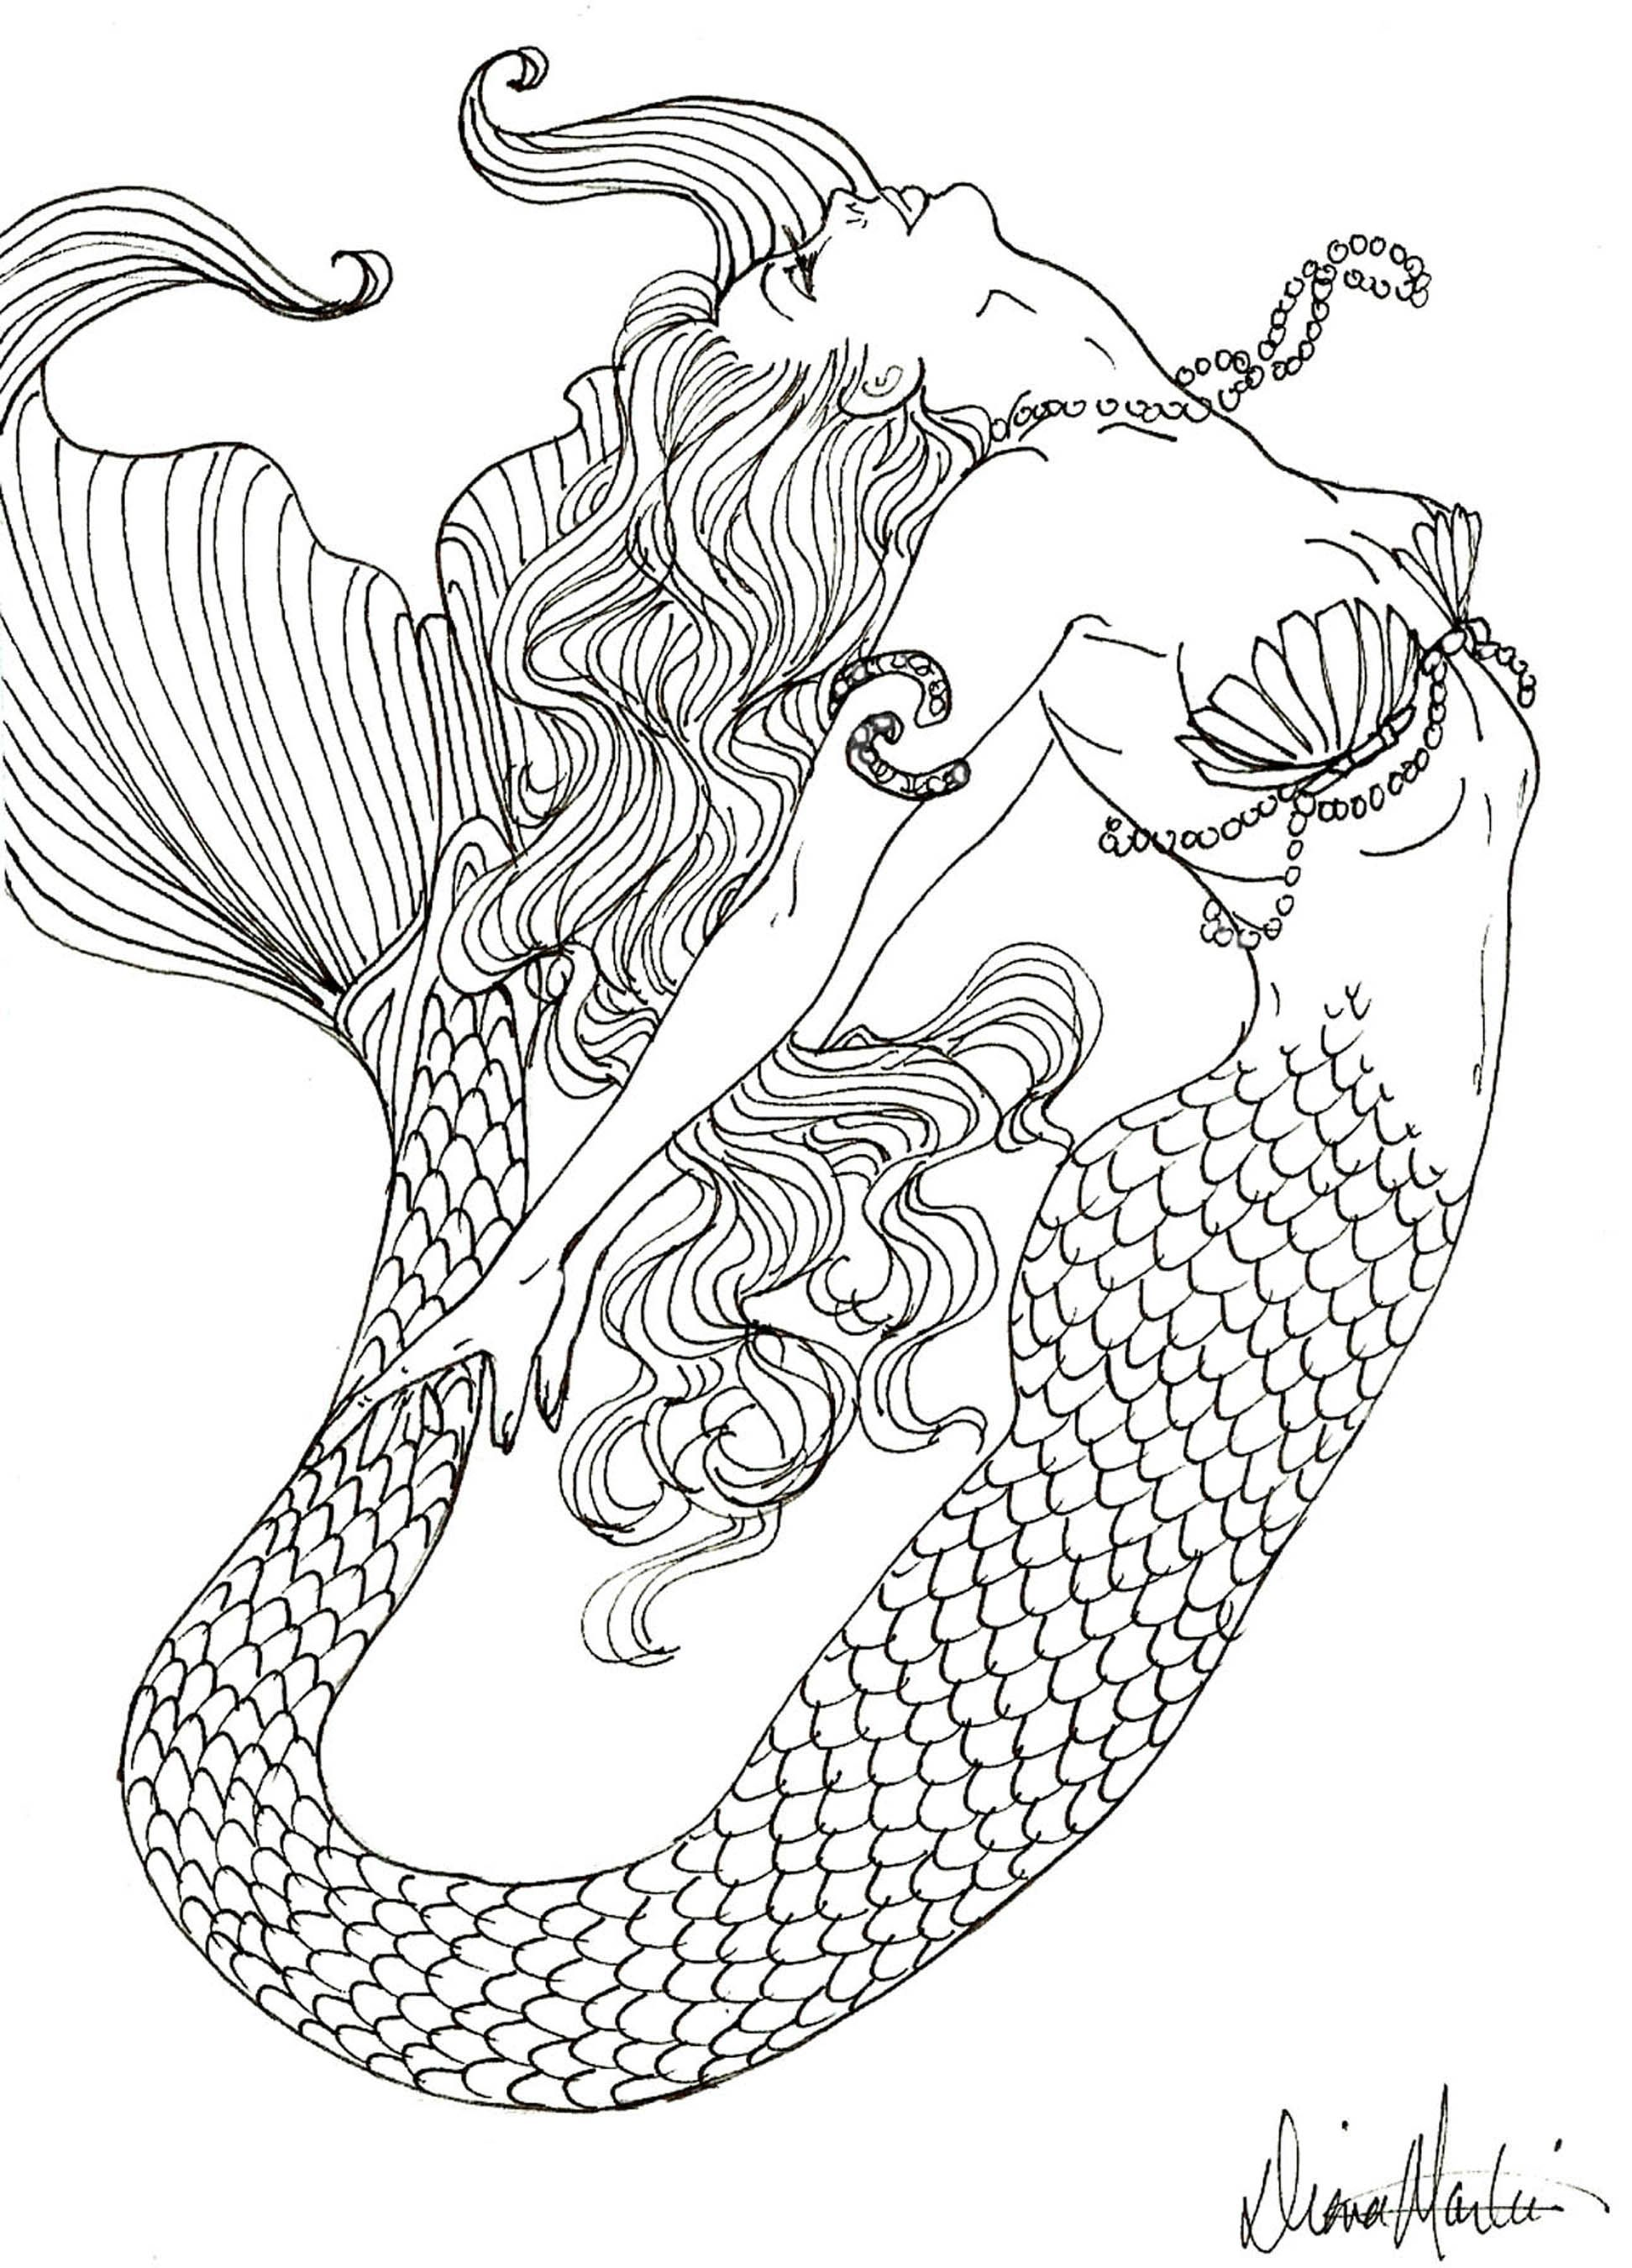 Coloring Pages Mermaids Coloring Pages to Print Of Mermaid Coloring Book Gallery #coloringpagestoprint